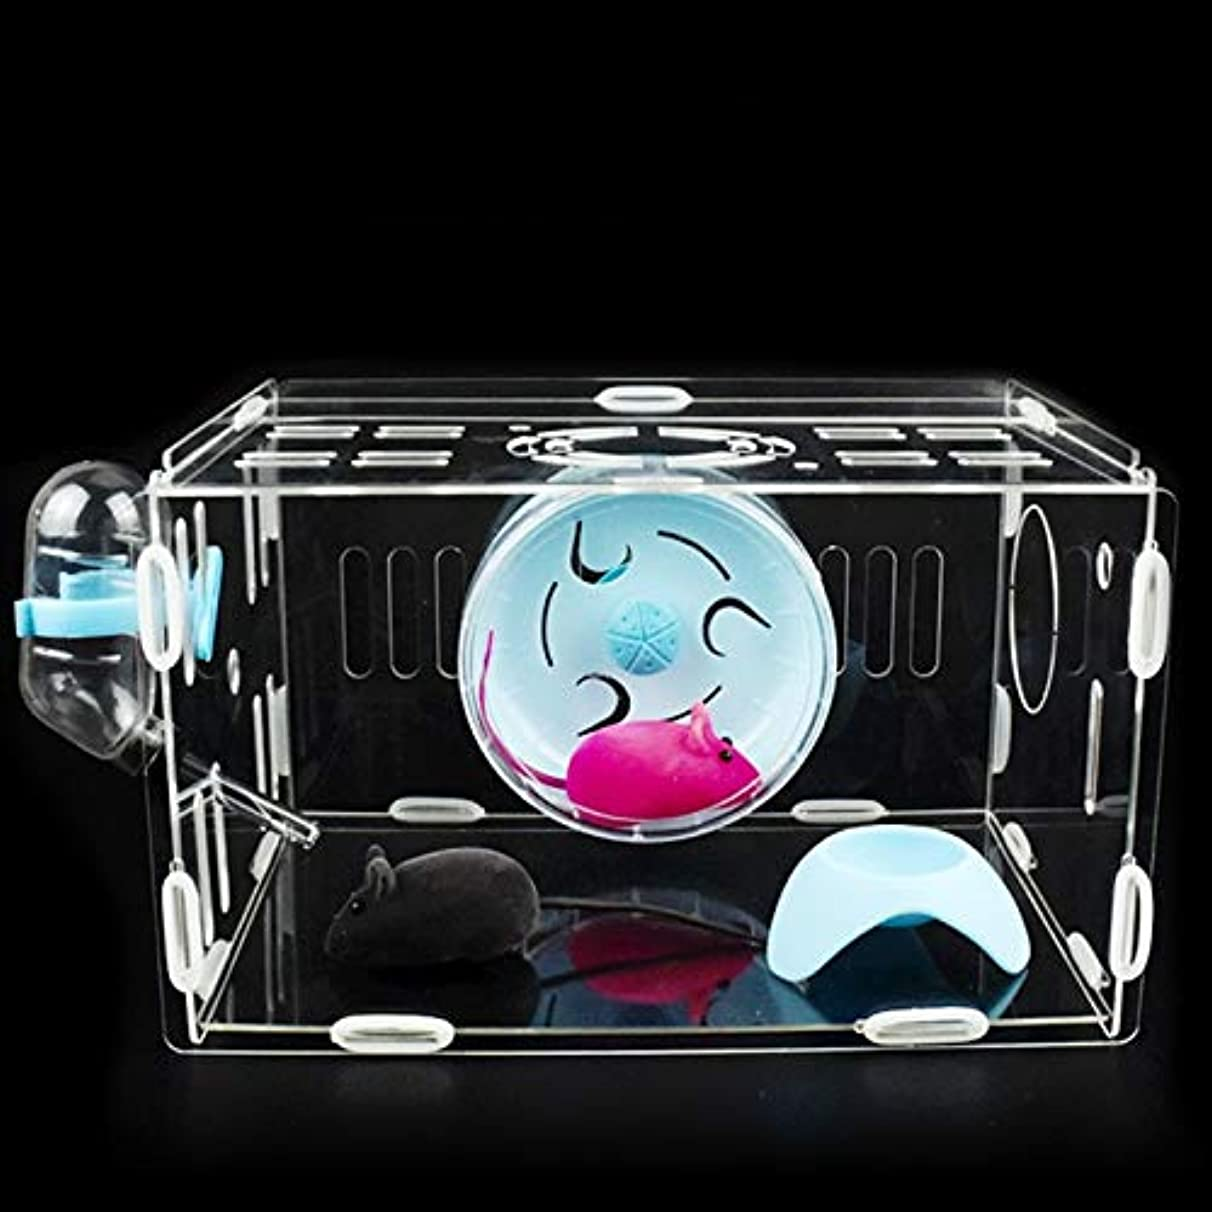 Hamster Cage - Transparent Acrylic Hamster Cage Large Luxury Castle Combination External Pipe Tunnel Fan Cage Small Pet House AP11211127